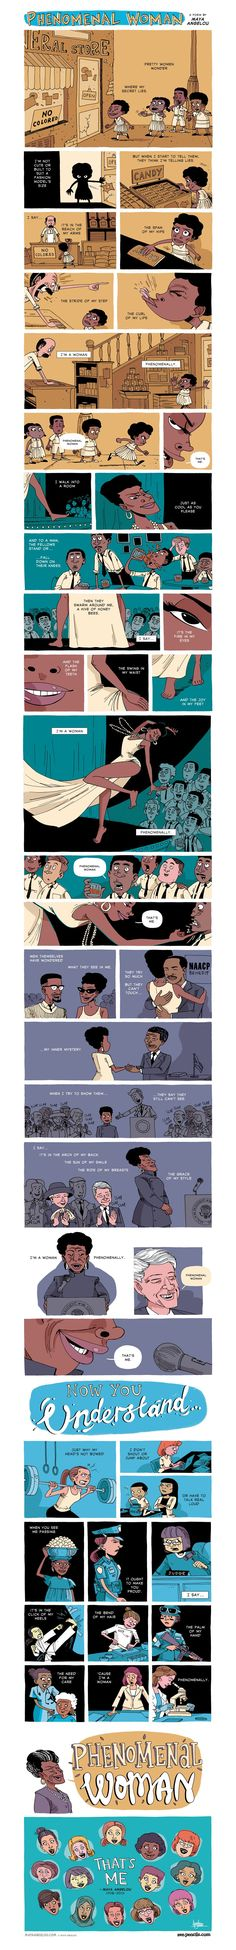 ZEN PENCILS » Cartoon quotes from inspirational folks